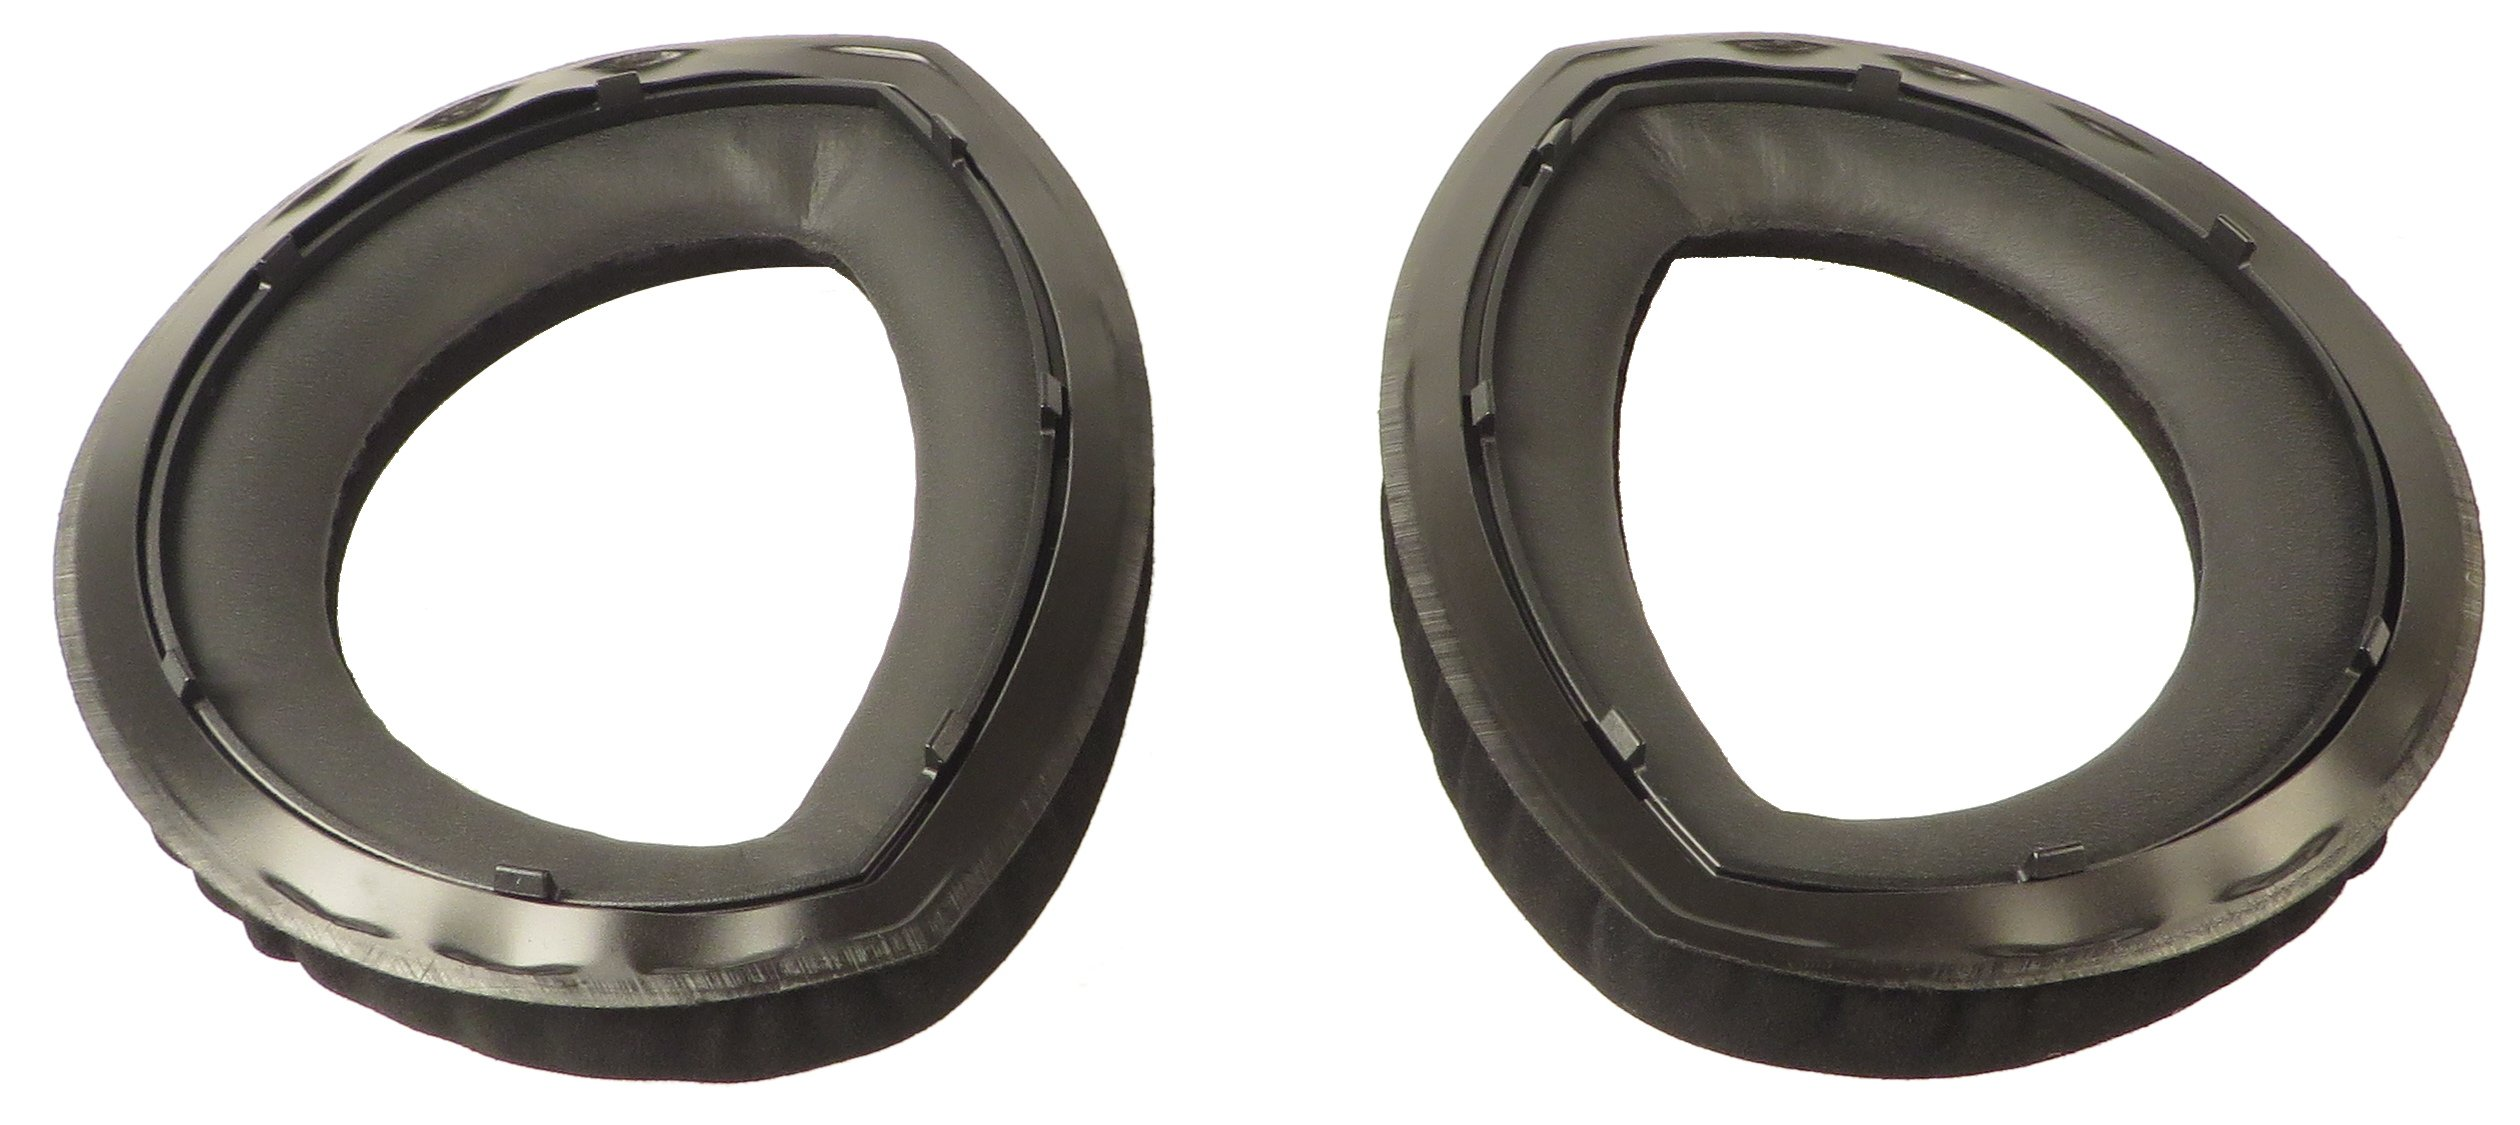 Earpad (Pair) for HD 700